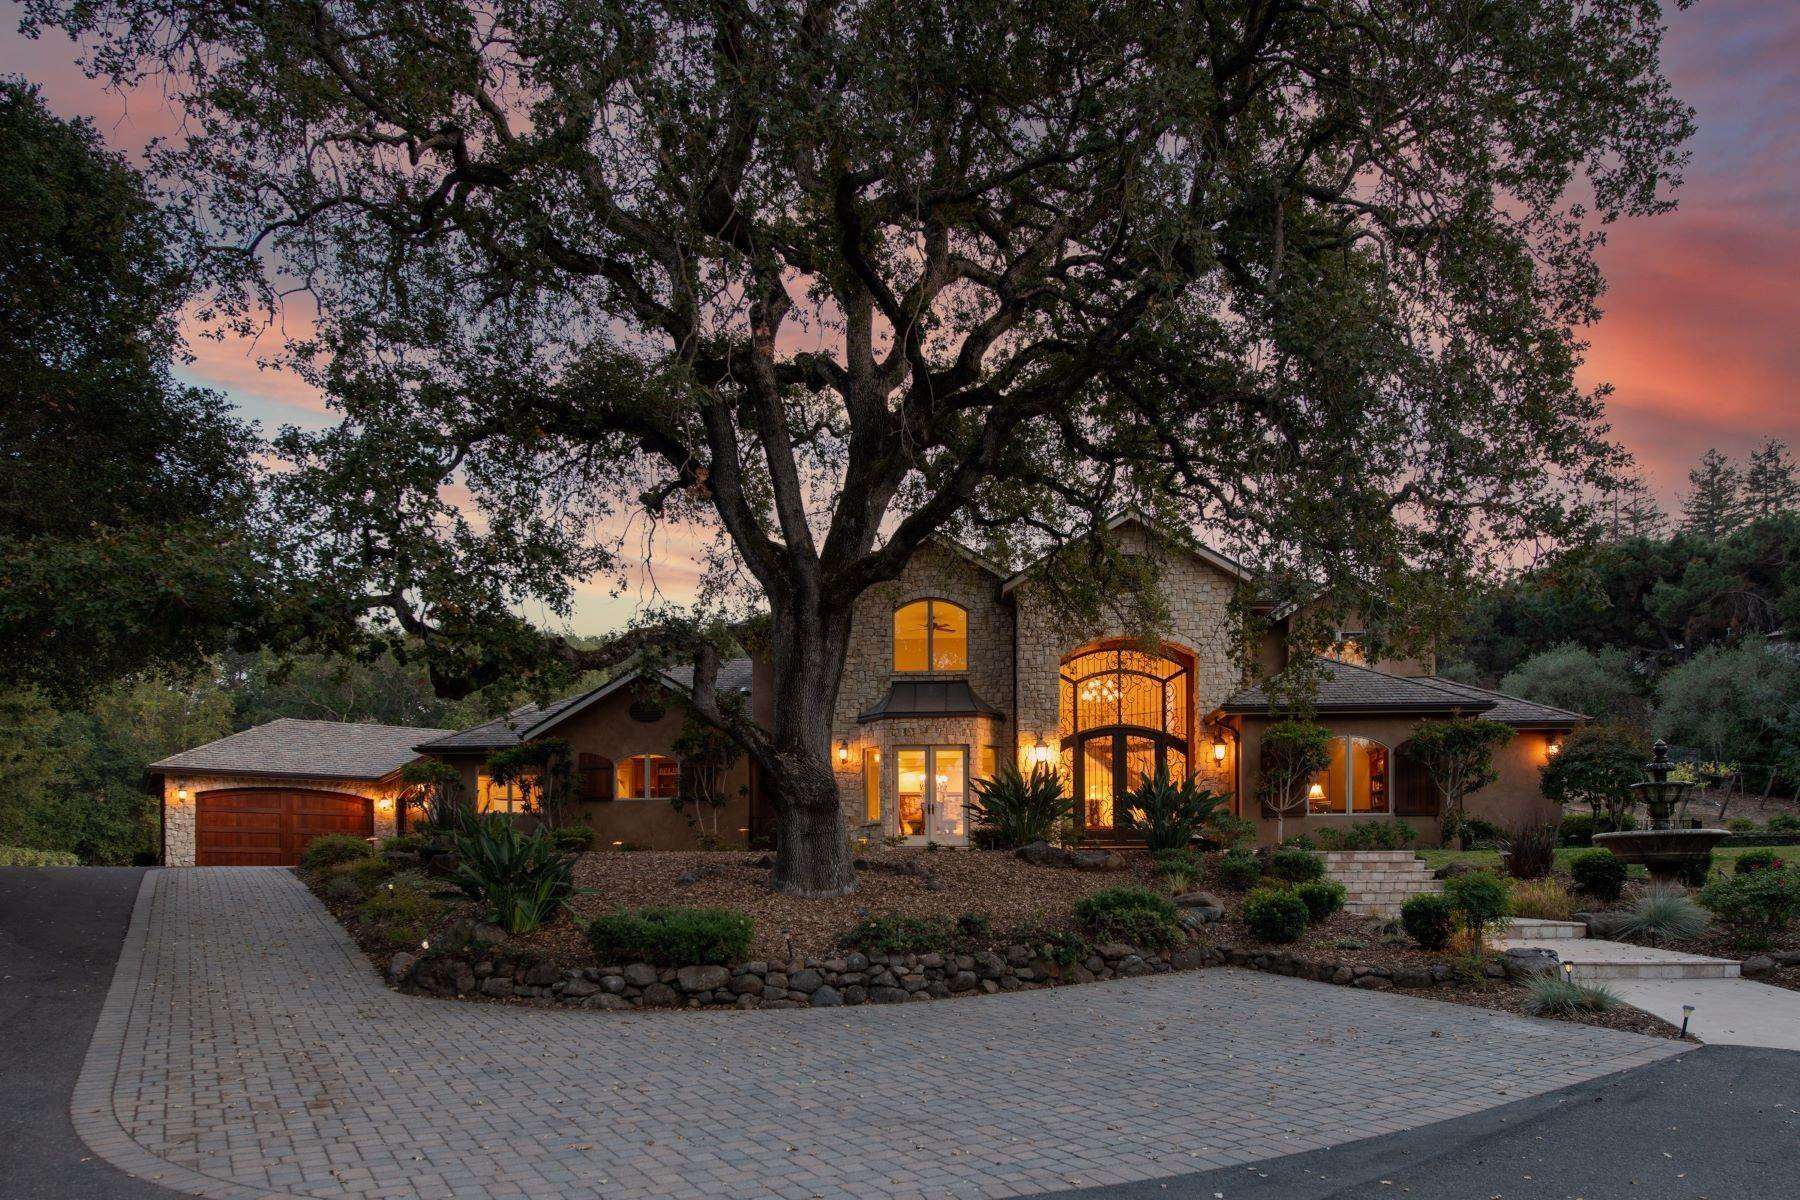 Single Family Homes for Sale at Traditional Masterpiece with European Flair 23923 Jabil Lane Los Altos Hills, California 94024 United States